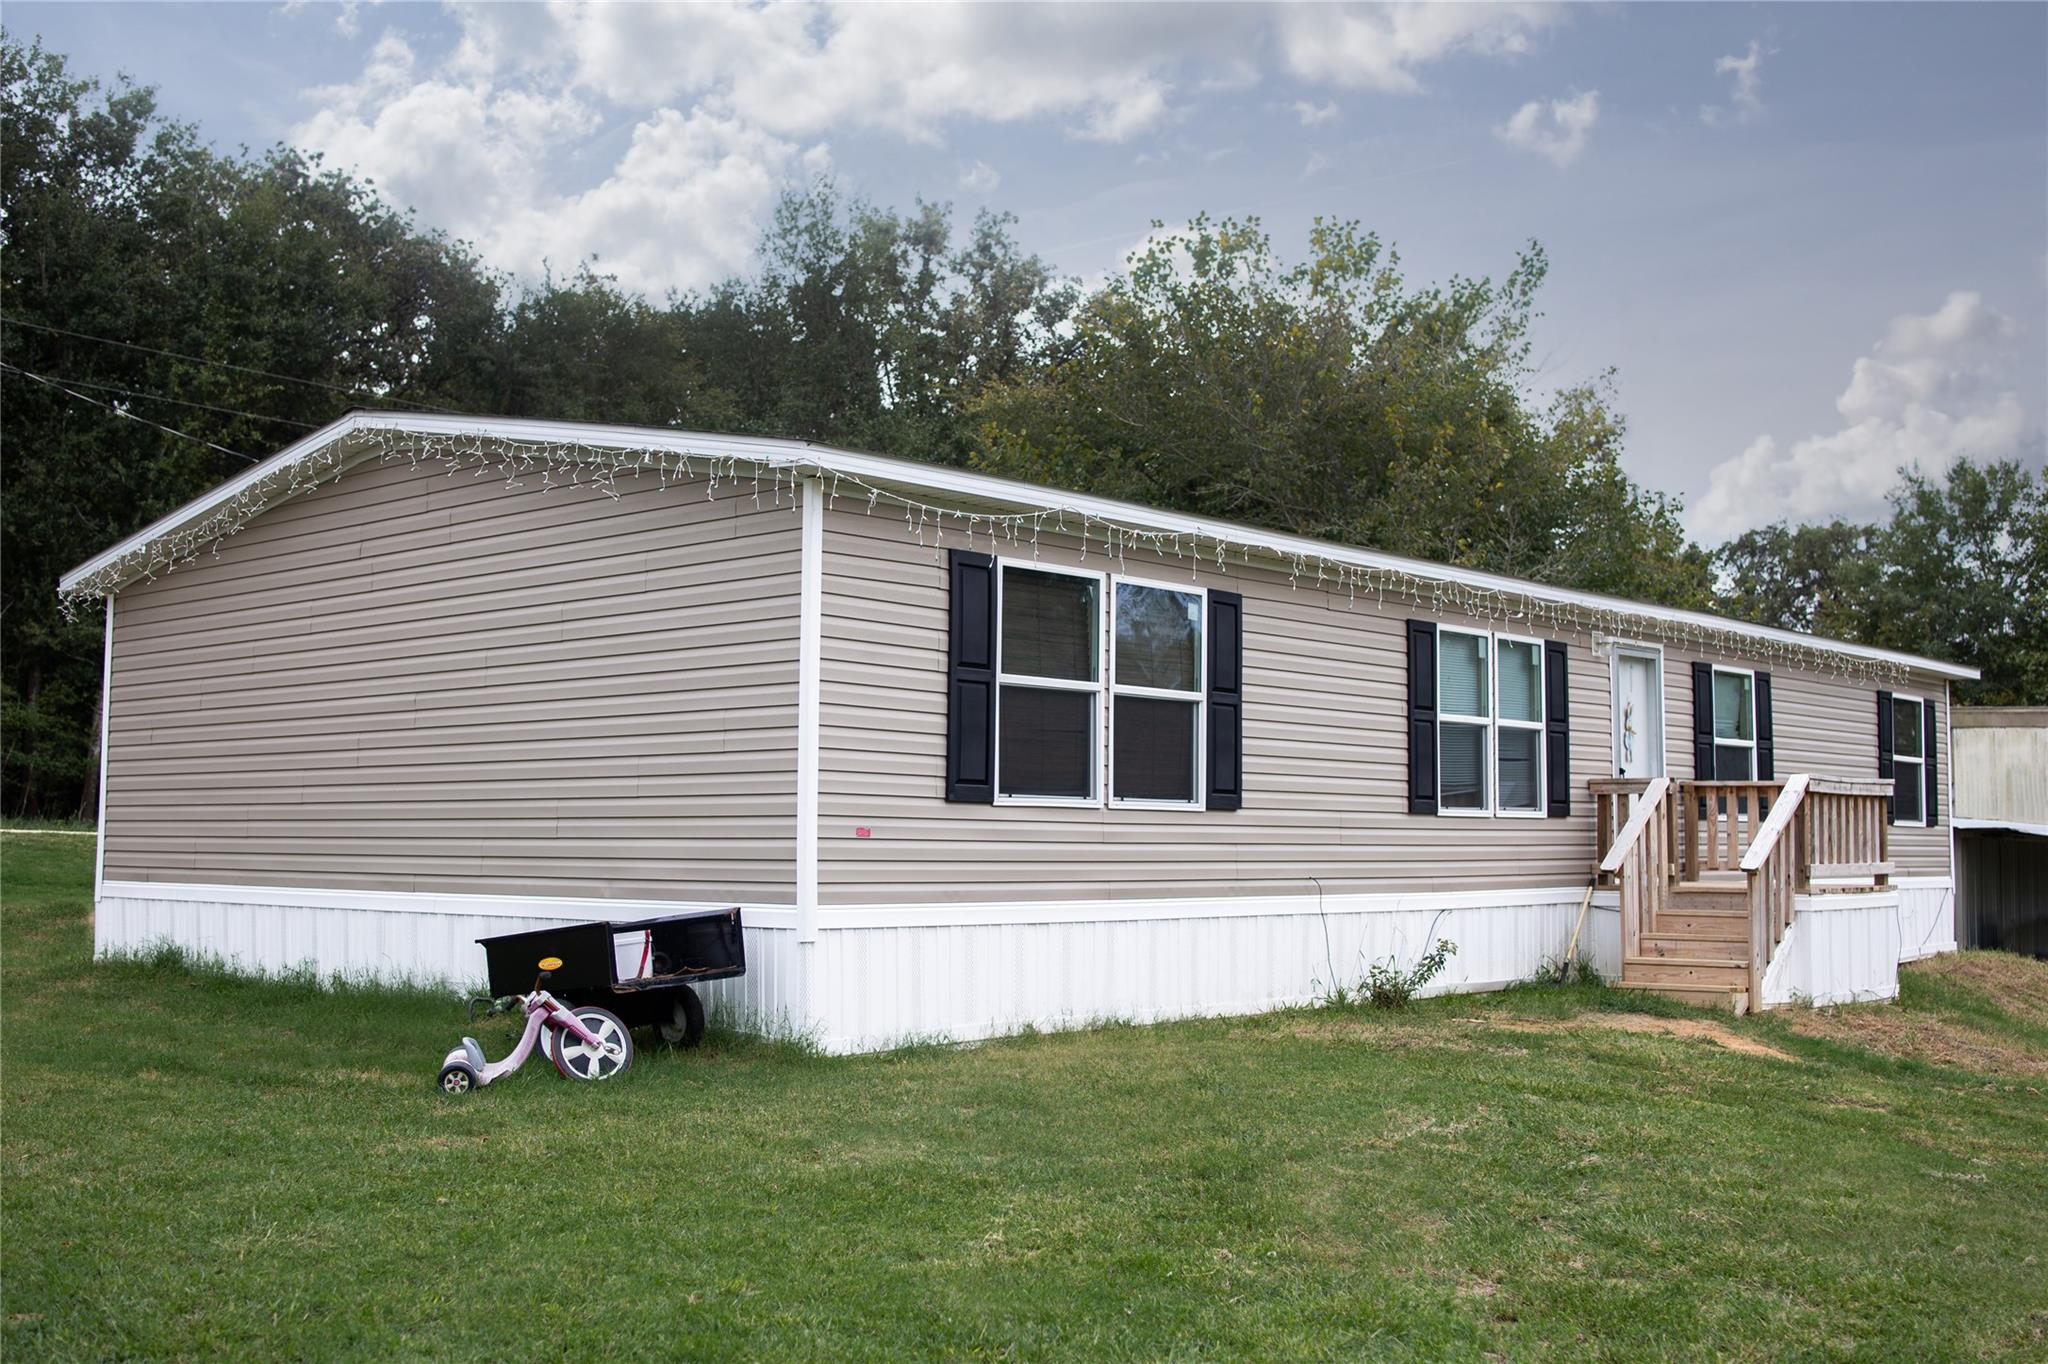 196 LCR 904 Property Photo - Jewett, TX real estate listing